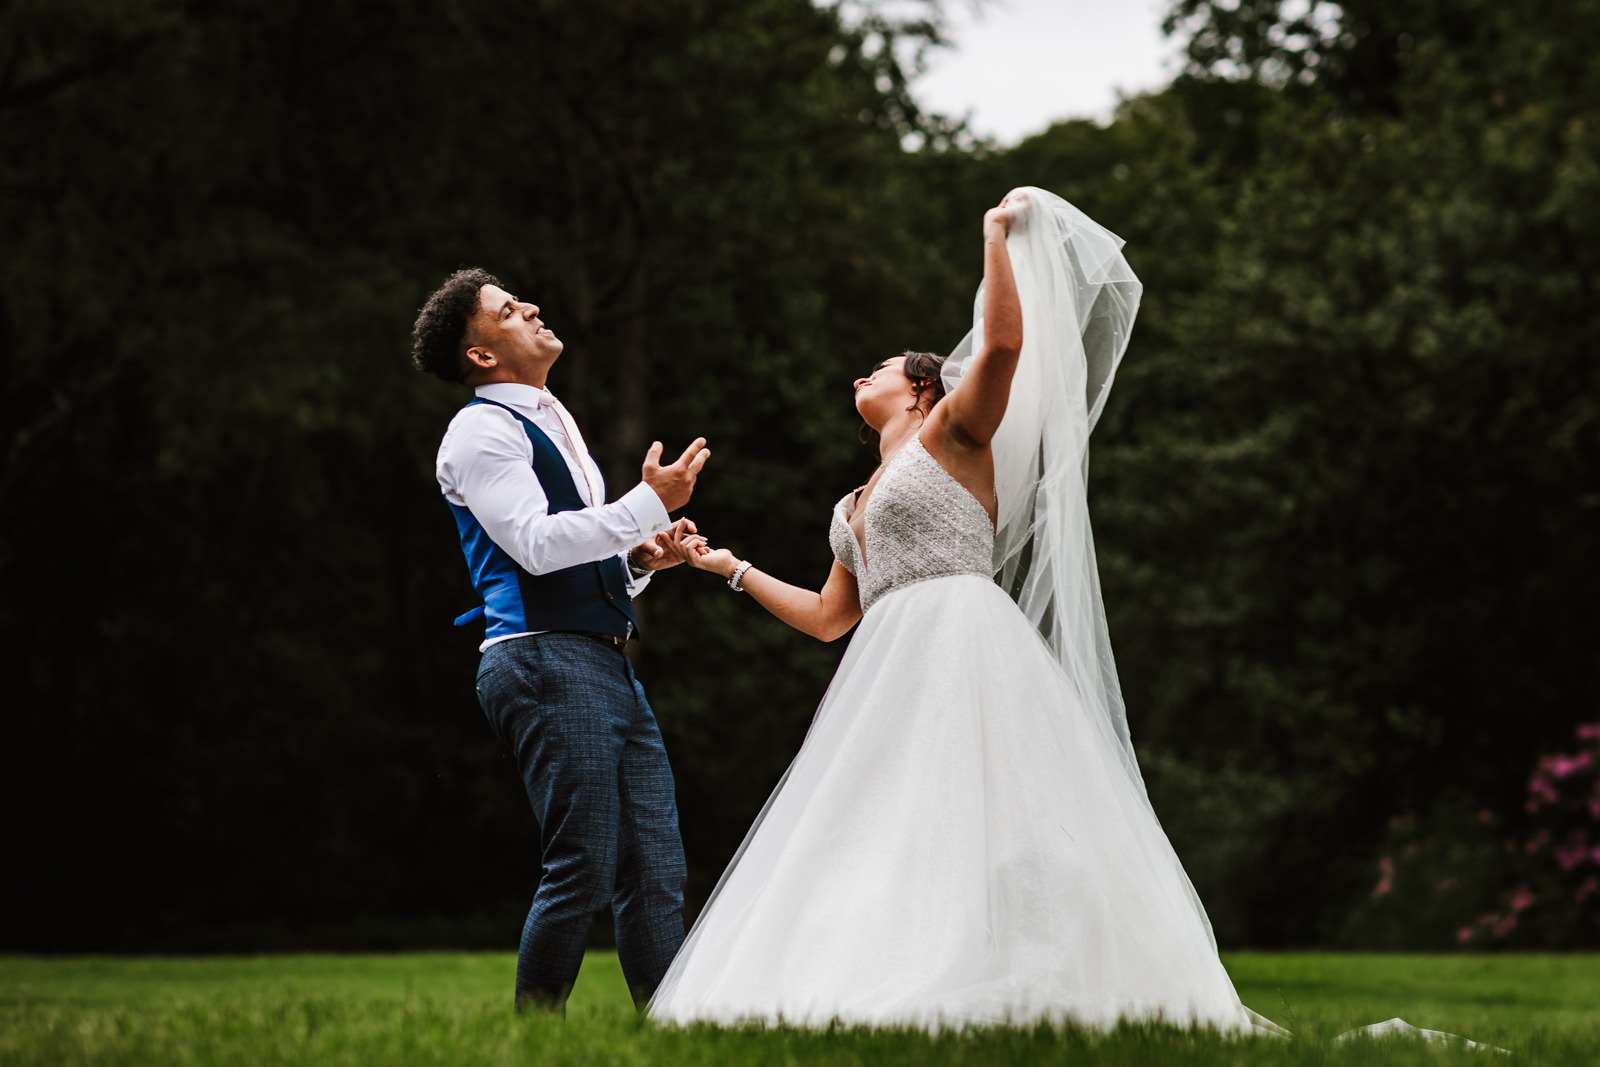 Bride and groom dancing on the lawn